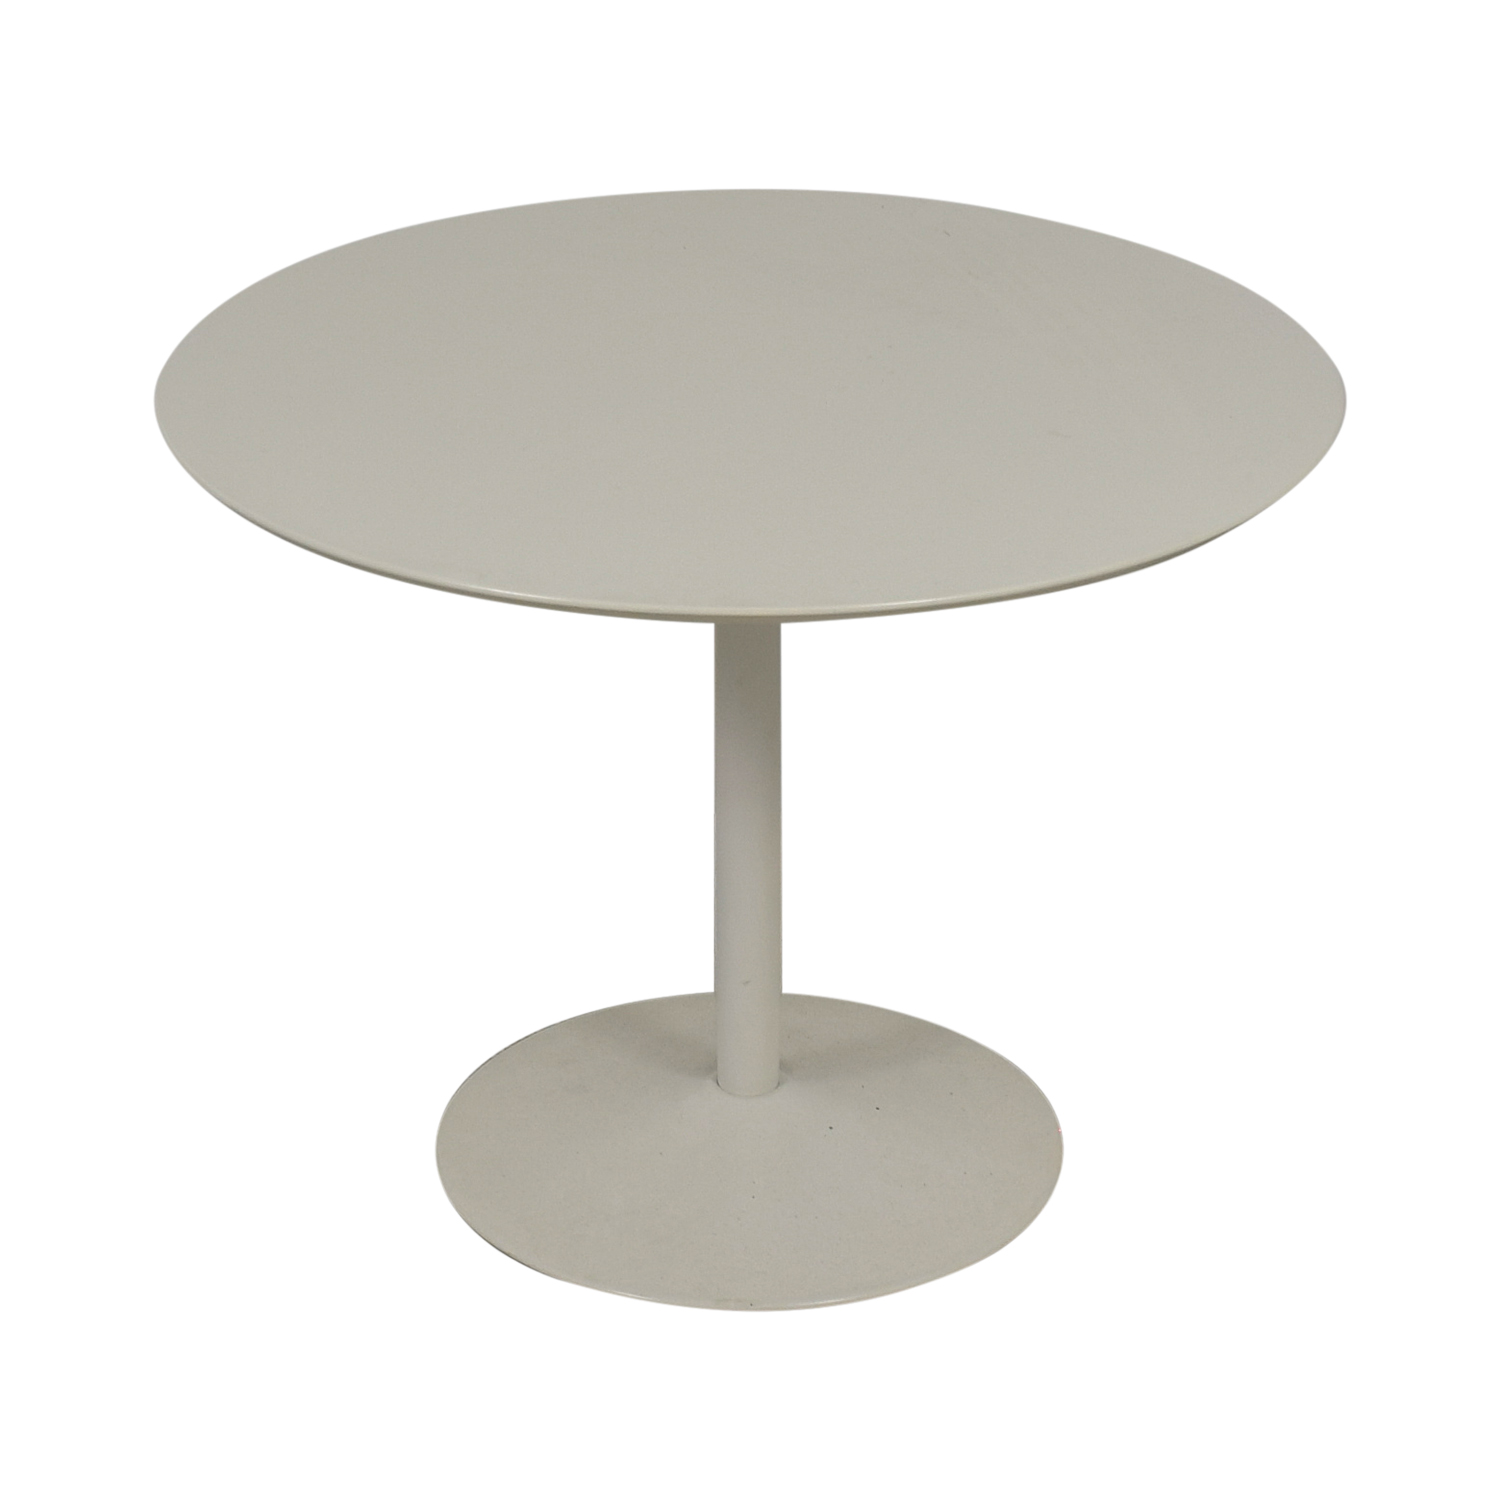 OFF CB CB White Dining Server Tables - Cb2 tulip table